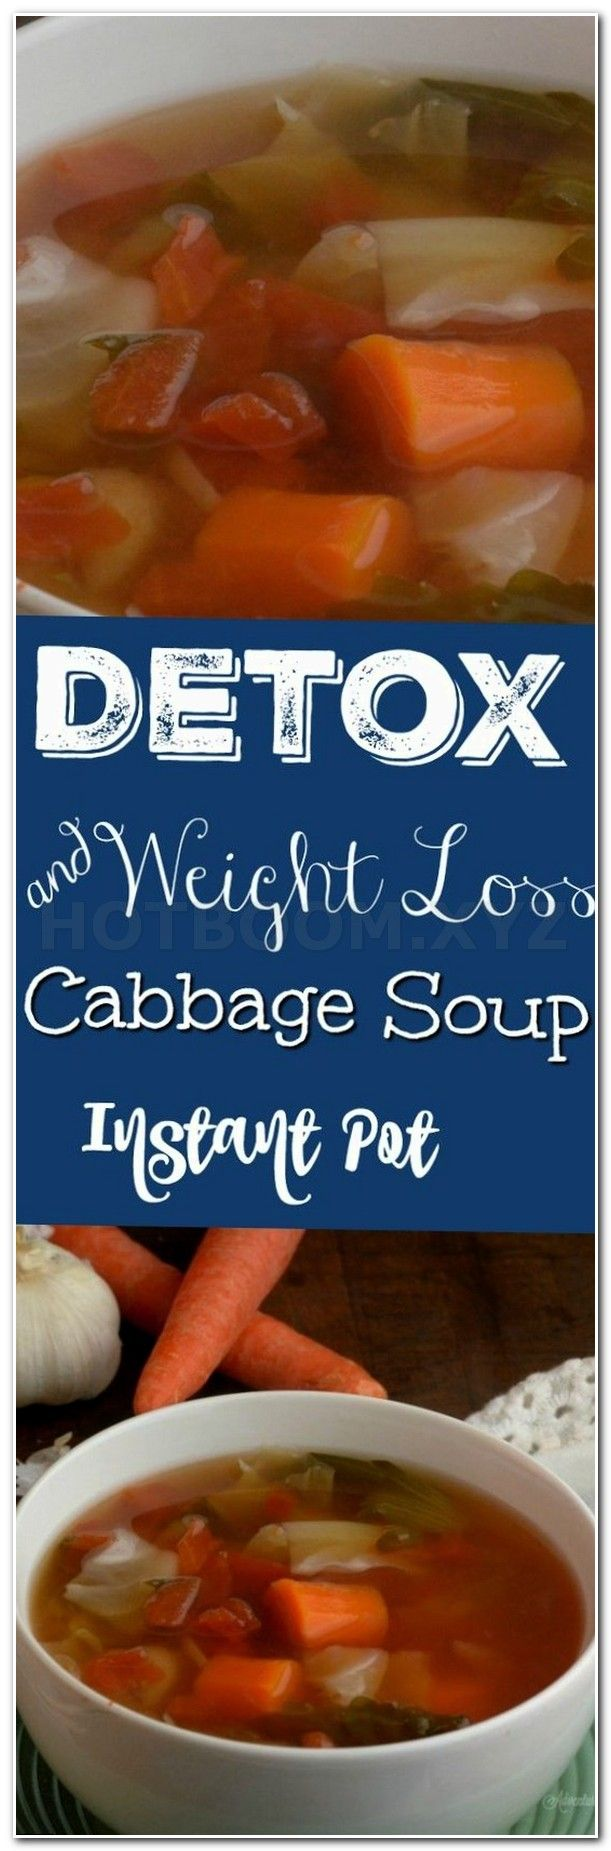 need to lose weight quickly, carb and sugar free diet, low gi diet diabetes, basic diet plan, lose weight in 3 days, no fat diet, lose weight fast in a week at home, foods low glycemic index, diet plan for men to lose weight, healthy weight loss foods, fit for life diet, lose 20 pounds in 2 weeks diet plan, low carb low fat high protein diet plan, eat and fast diet, 1200 calorie diet menu ideas